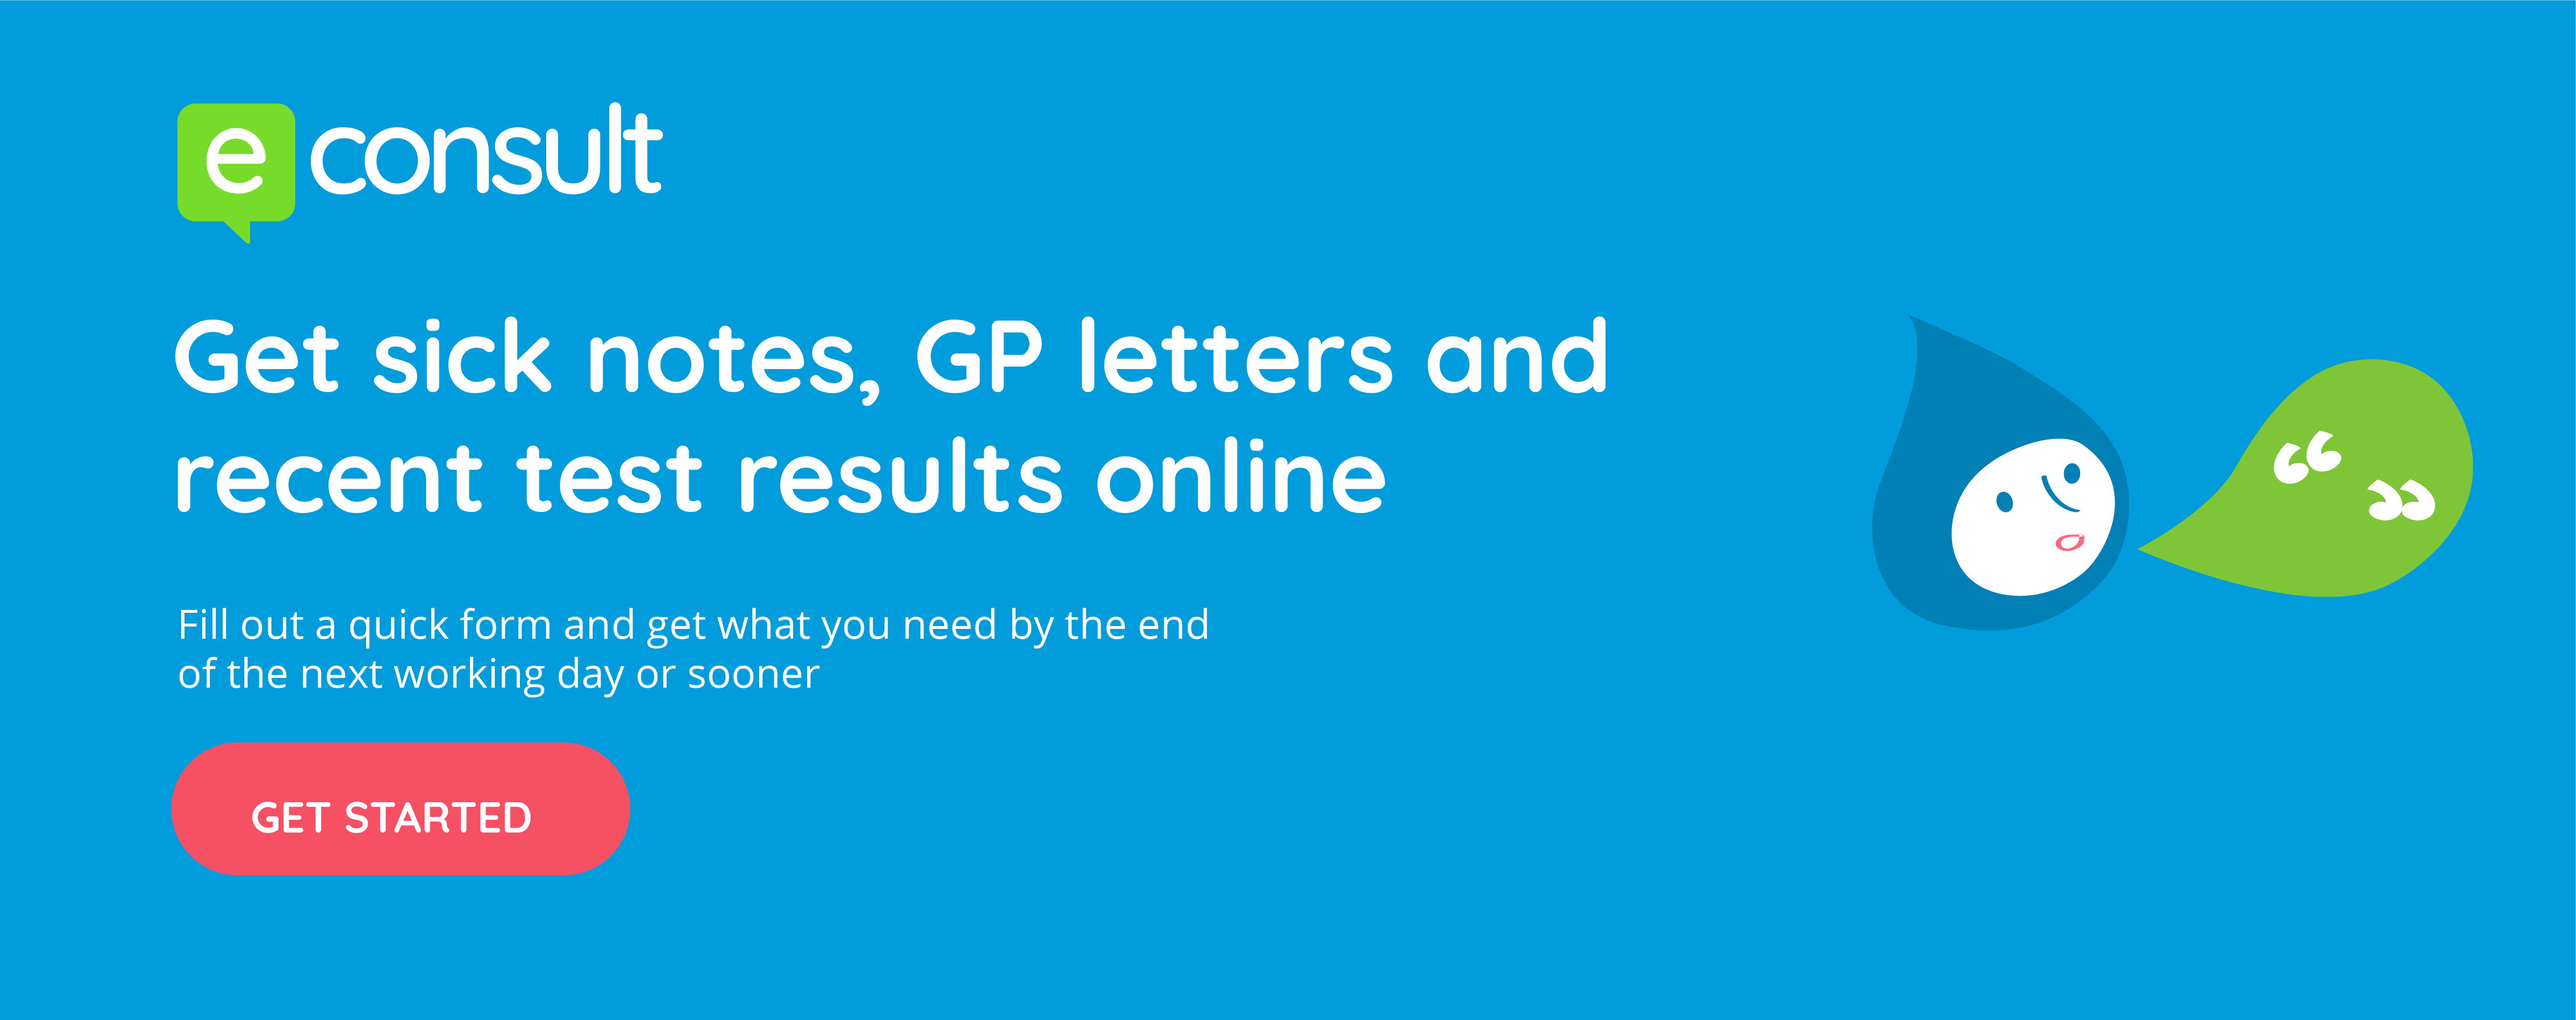 eConsult. Get sick notes, GP letters and recent test results online. Fill out a quick form and get what you need by the end of the next working day or sooner